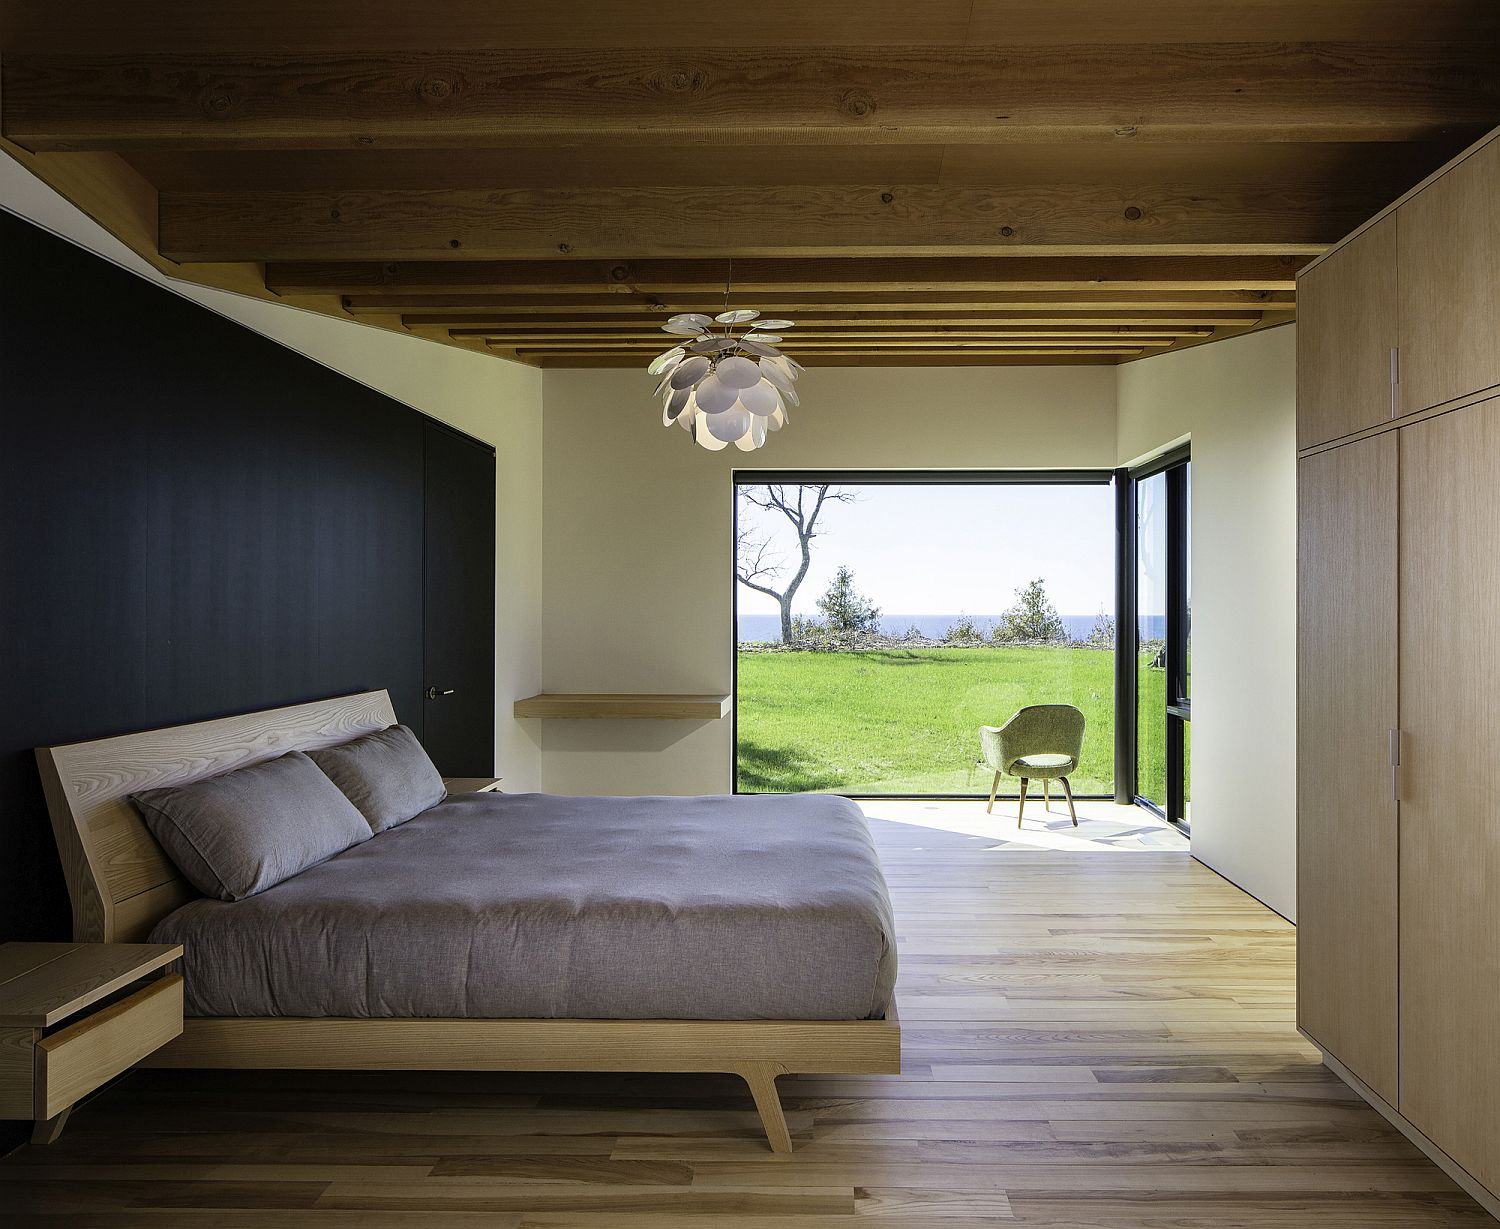 Breezy modern bedroom with smartly framed view of the outdoors